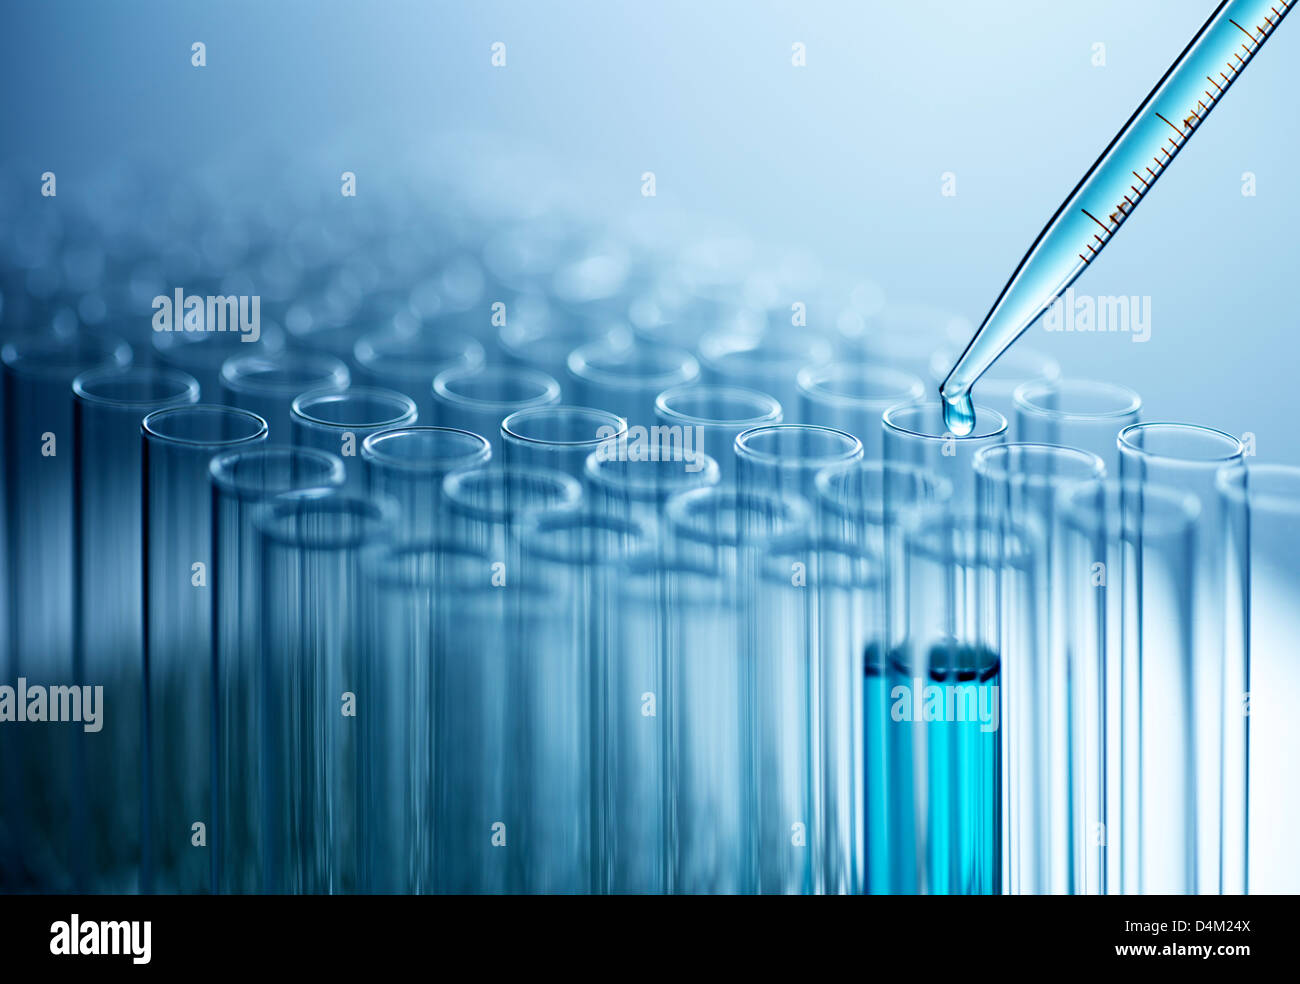 Pipette dropping liquid into test tube - Stock Image